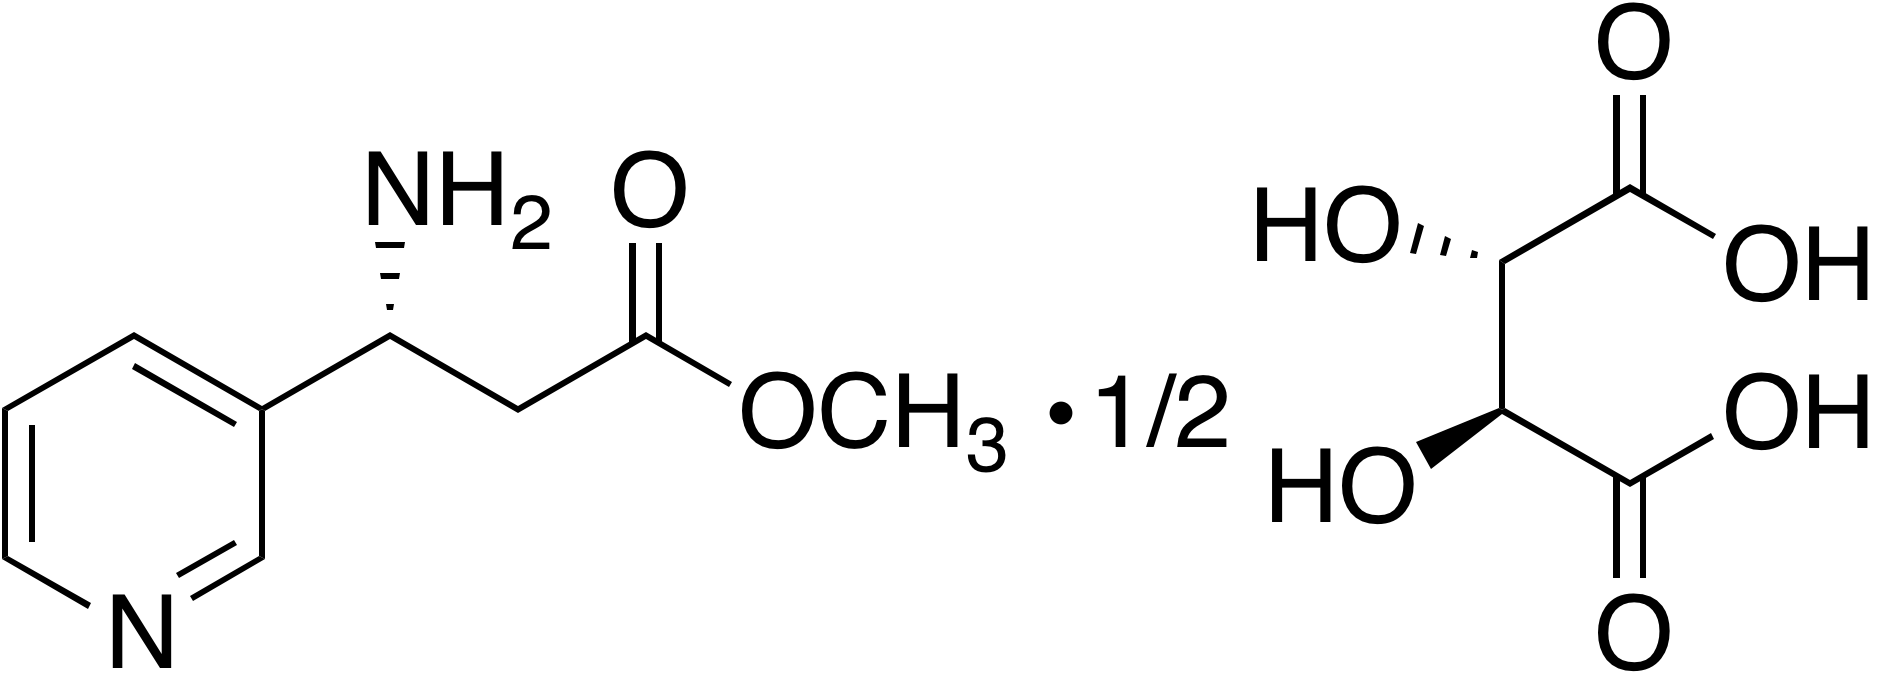 Methyl (R)-3-amino-3-(3-pyridyl)propanoate hemitartrate